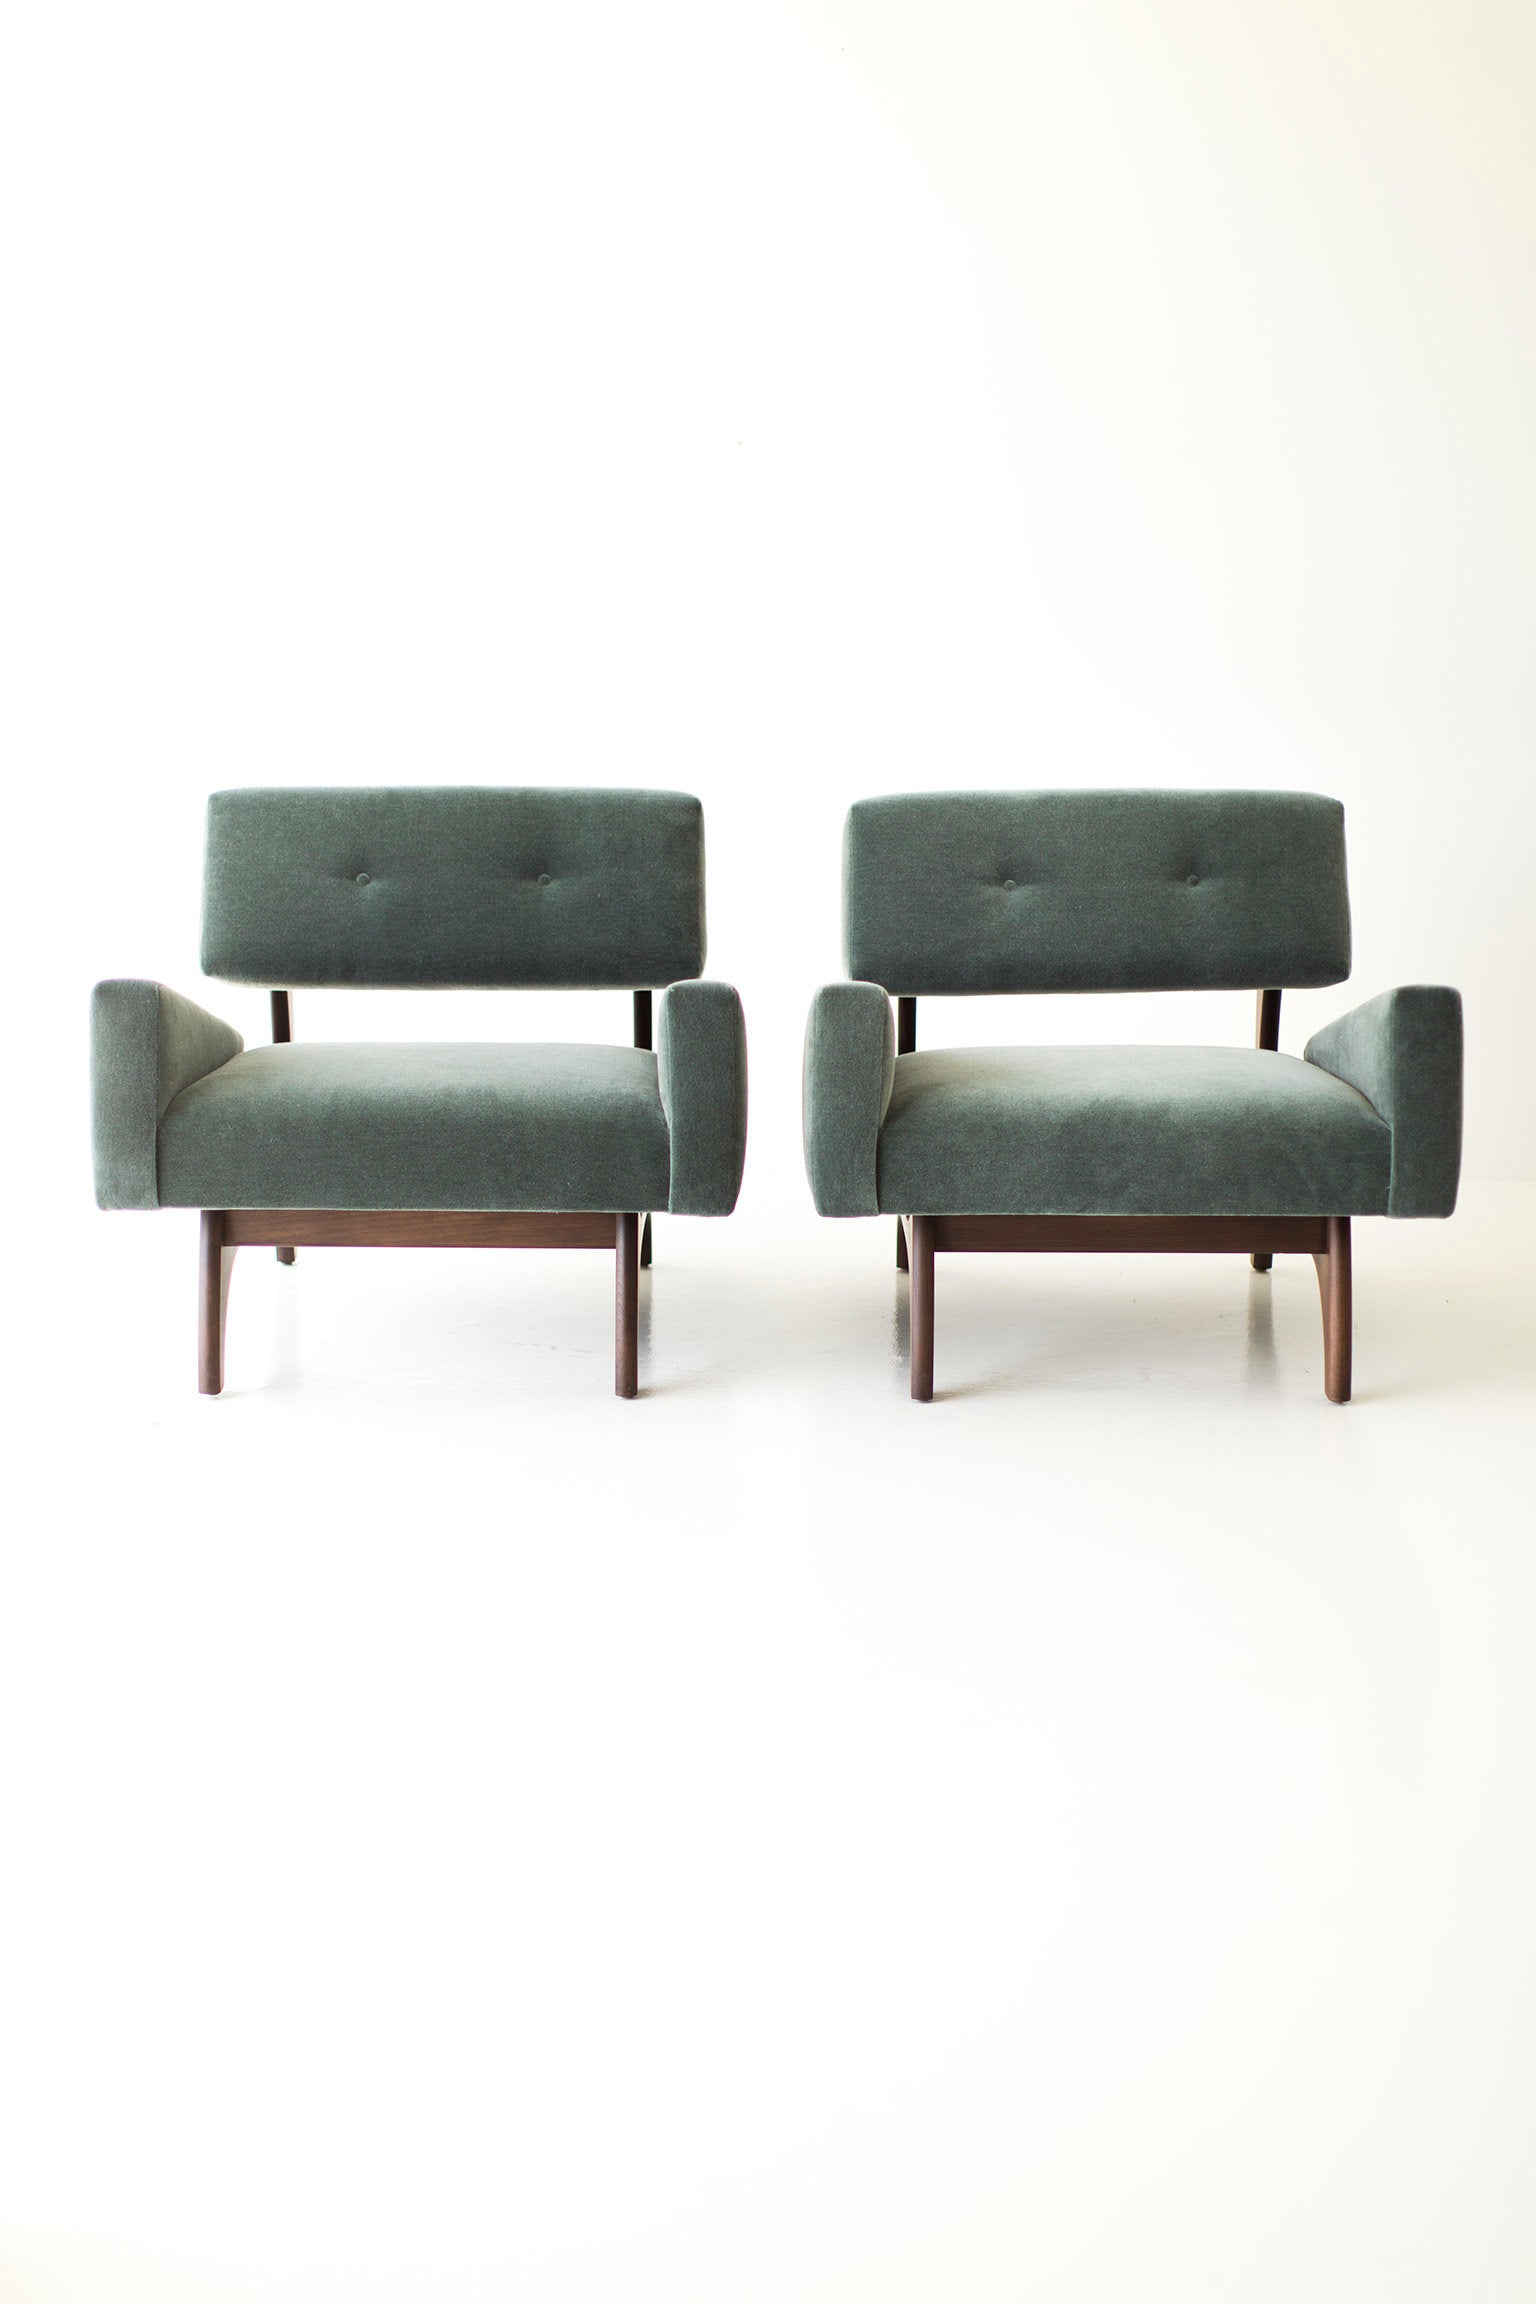 craft-associates-lounge-chairs-1519-03